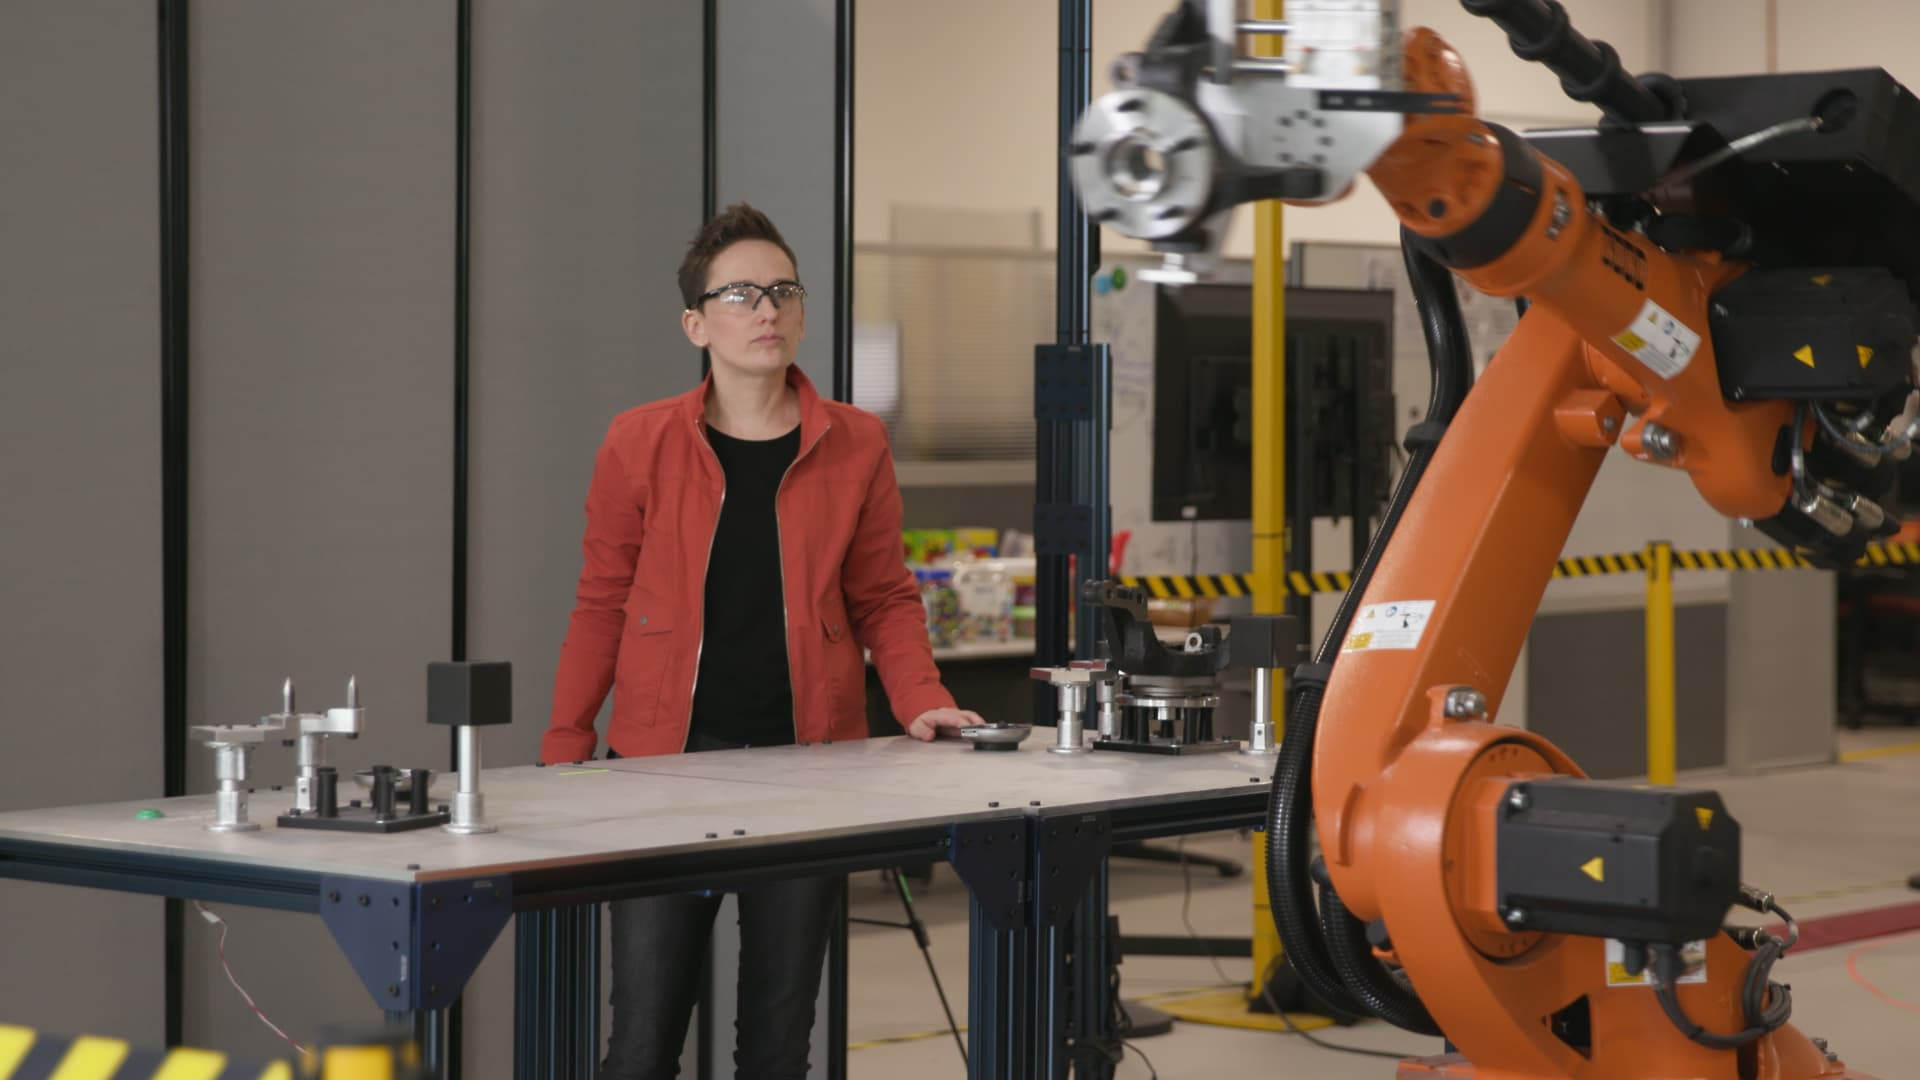 Robots are breaking out of their cages on the factory floor, and here's what they are doing